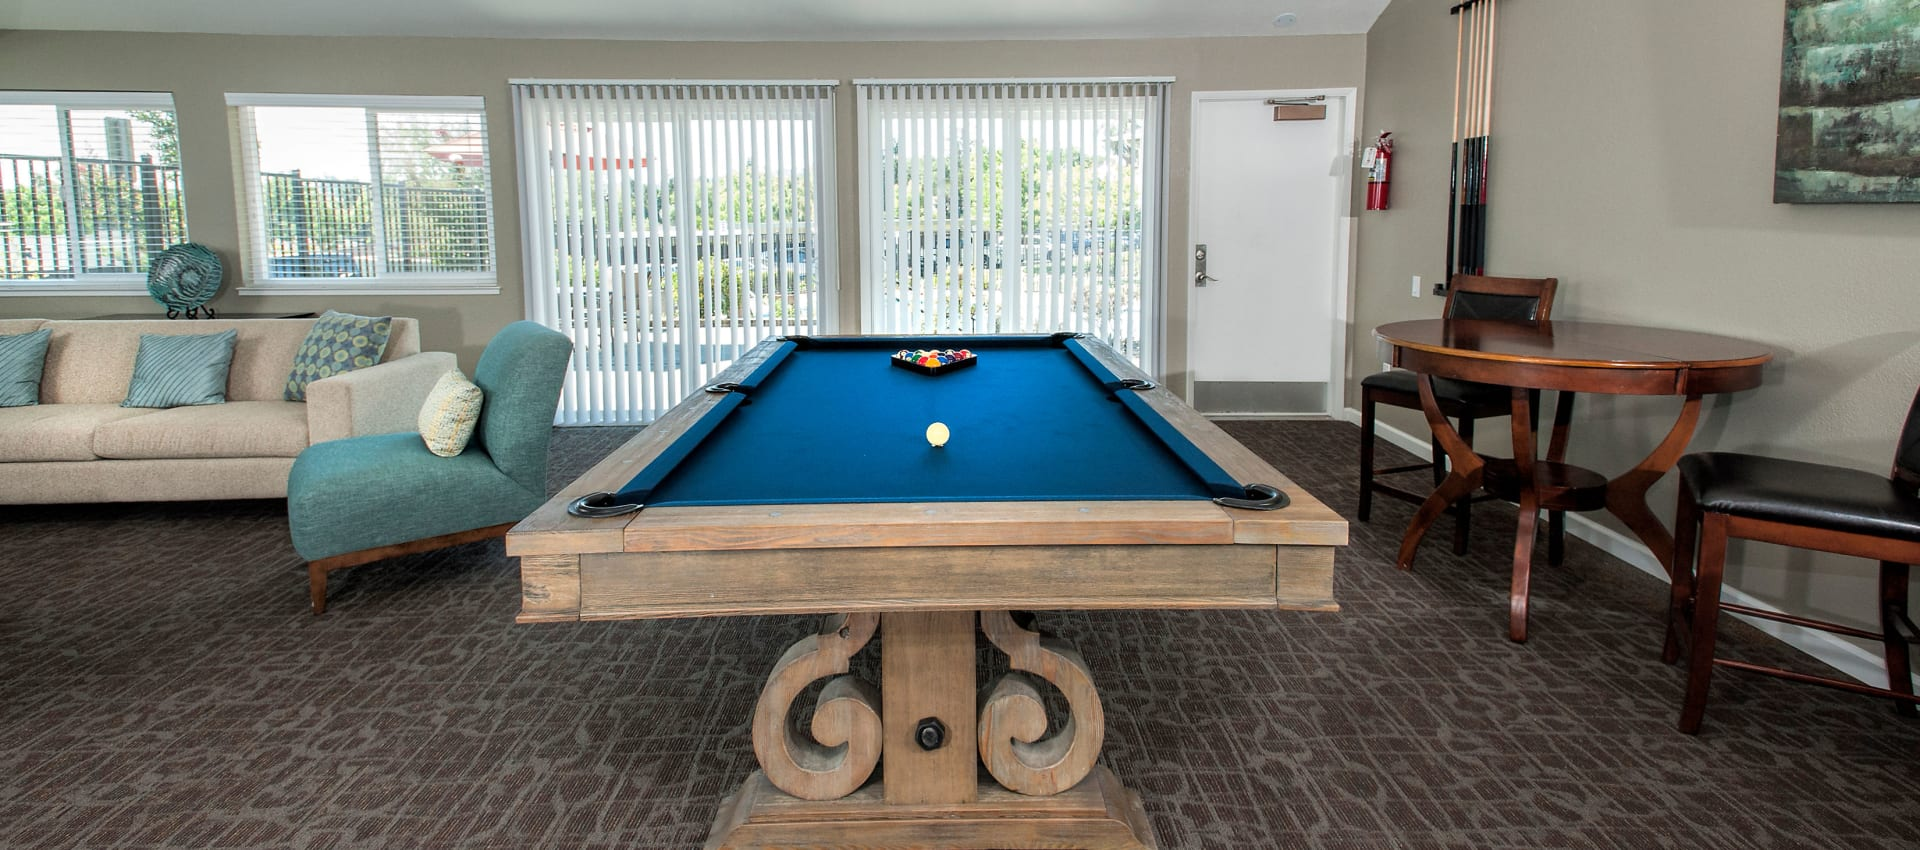 Community clubhouse with a pool table at Ridgecrest Apartment Homes in Martinez, California